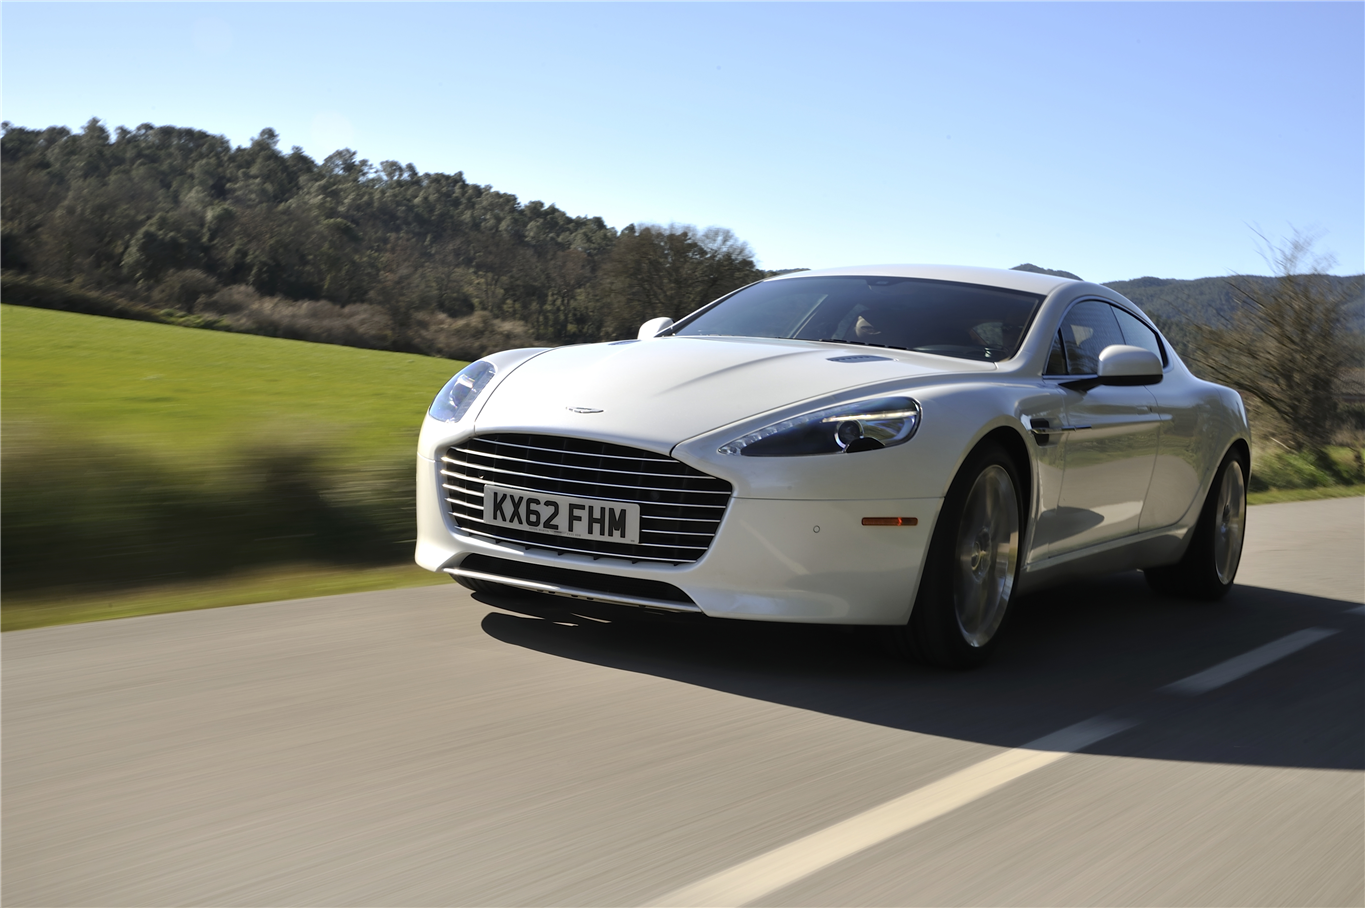 Aston Martin Rapide S. The Worldu0027s Most Beautiful 4 Door Sports Car.  Discover